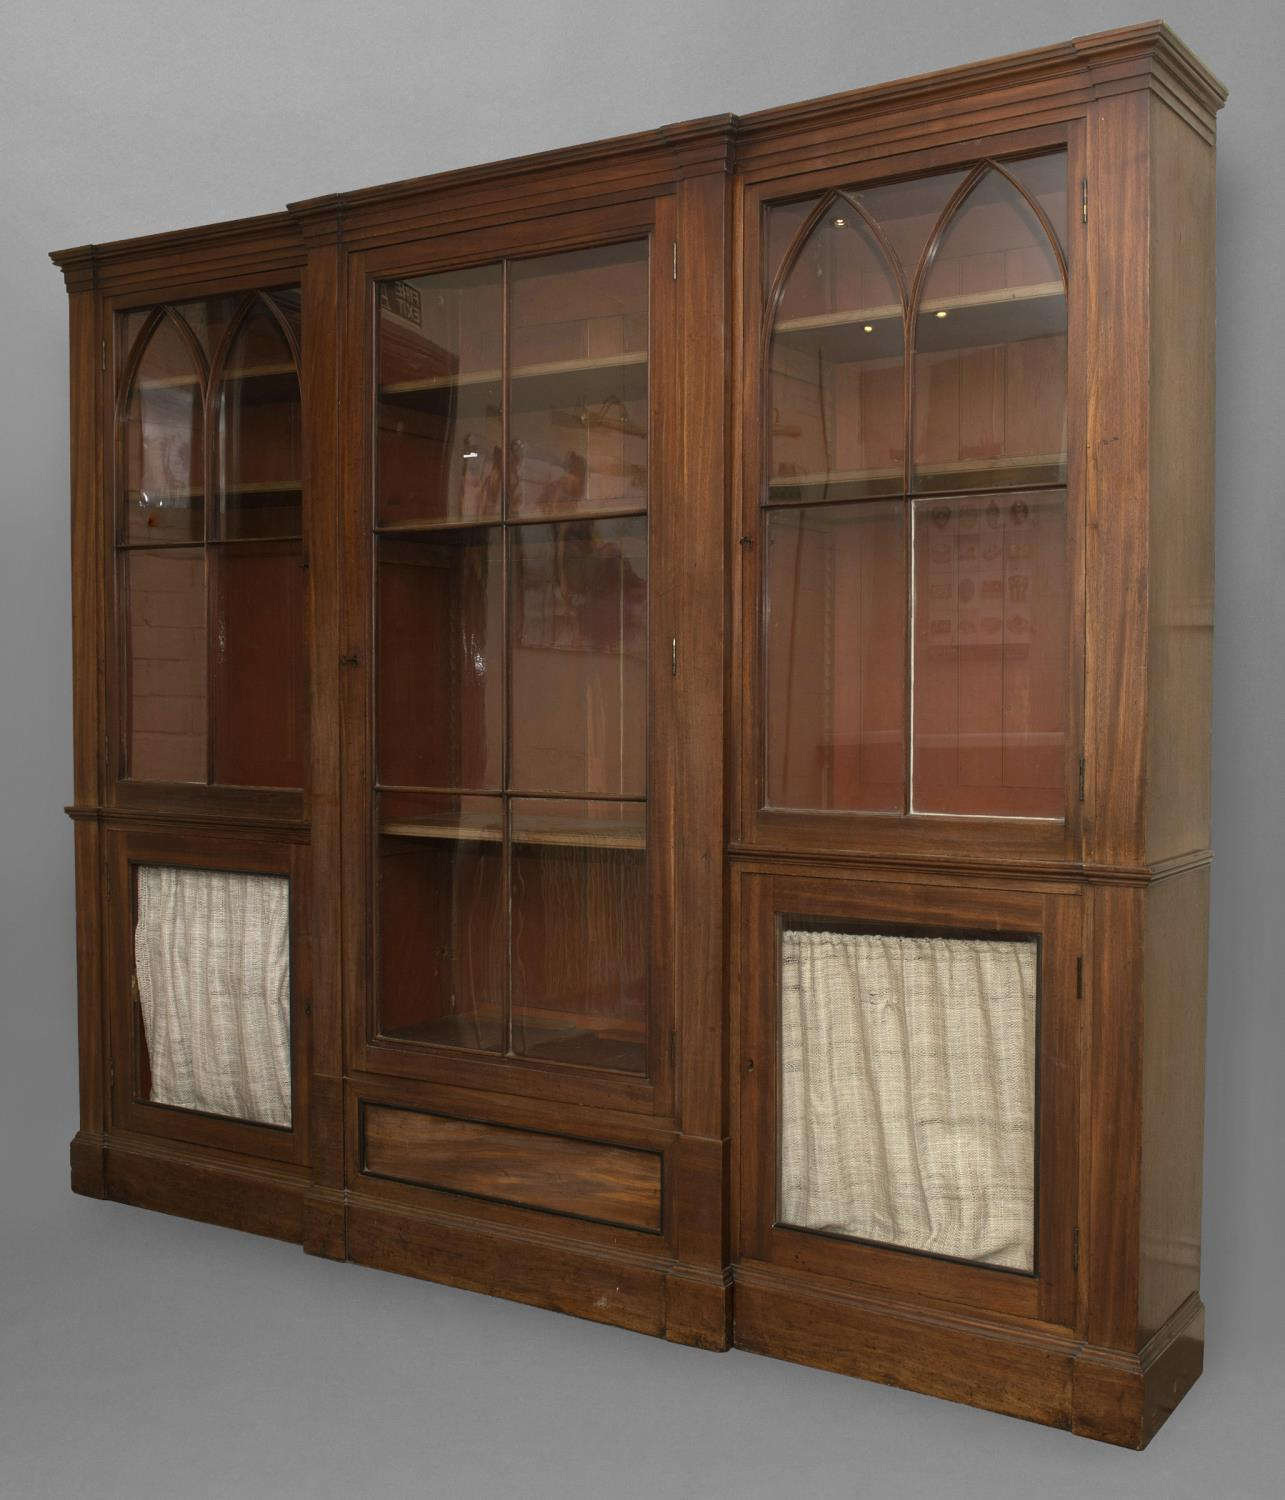 A LATE GEORGE III MAHOGANY LIBRARY BOOKCASE. With a broad central door with six glass panels - Image 2 of 2